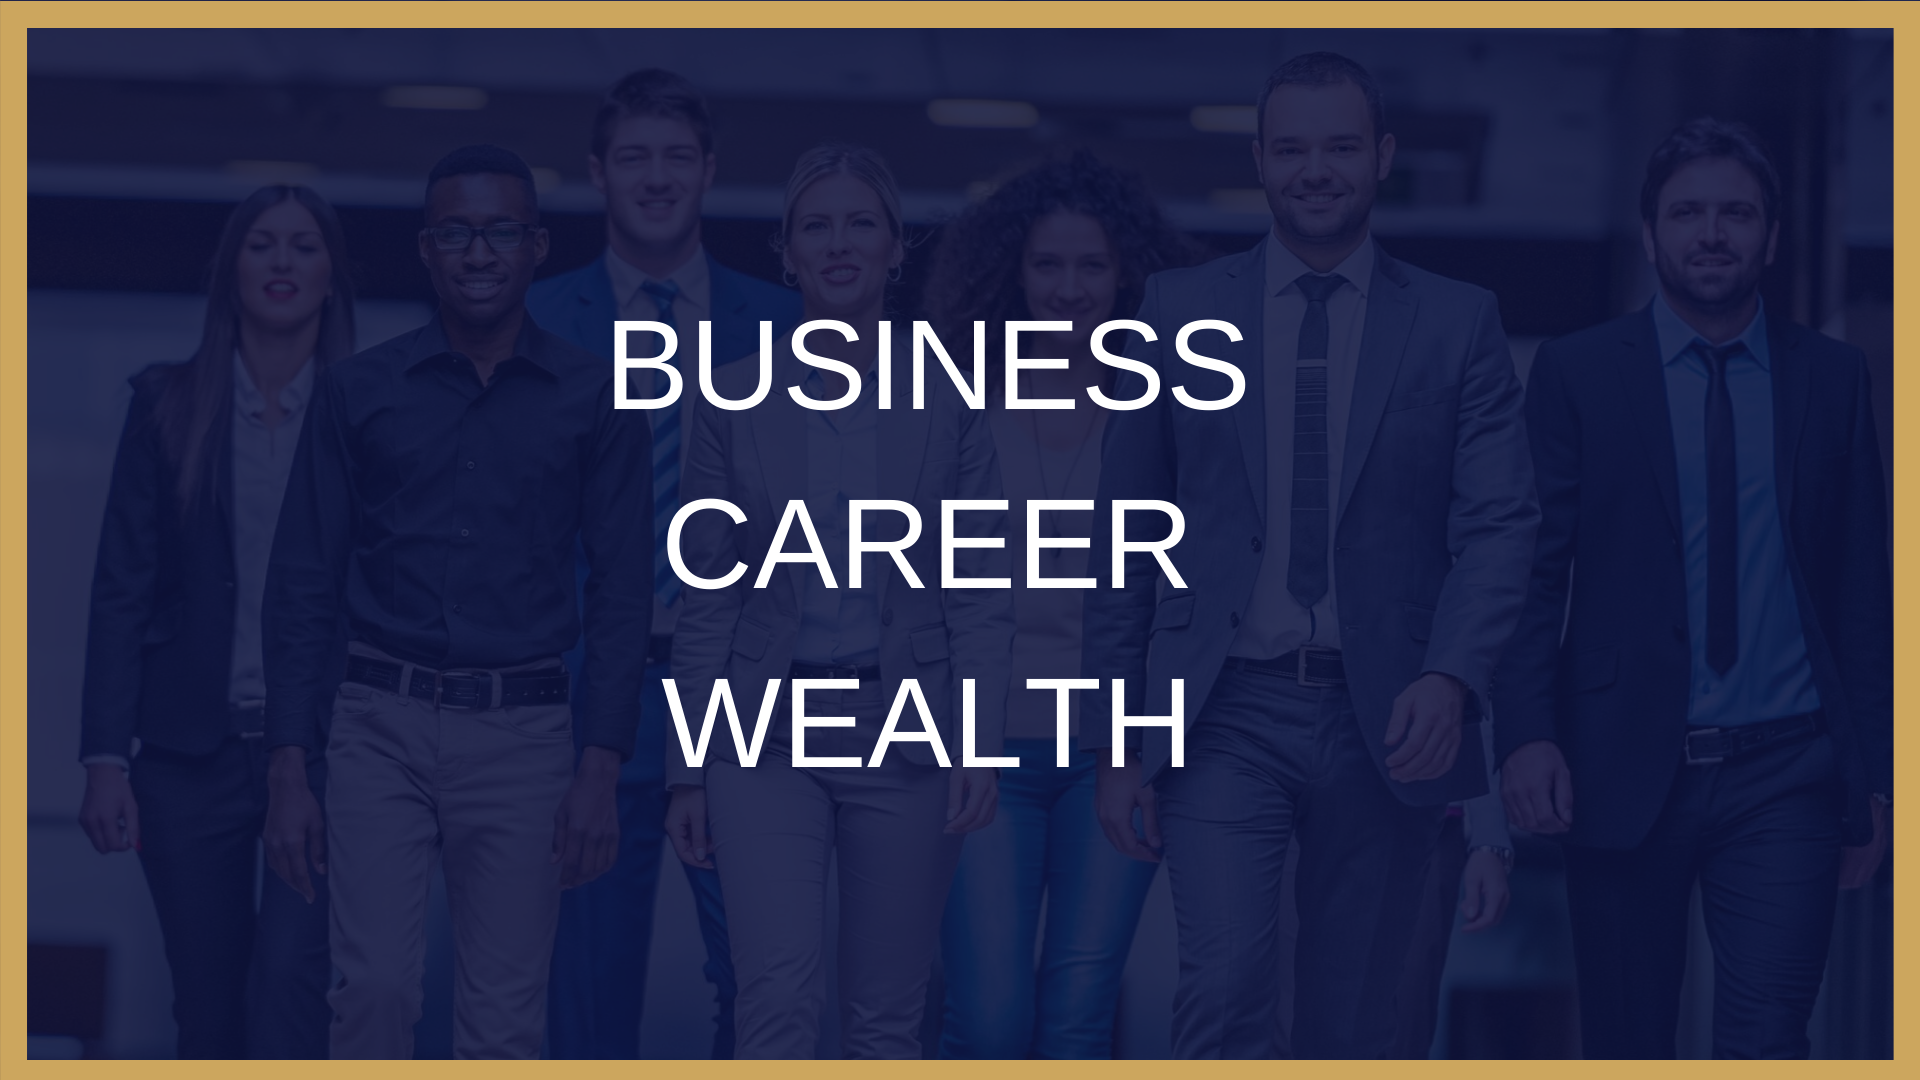 Business Career Wealth